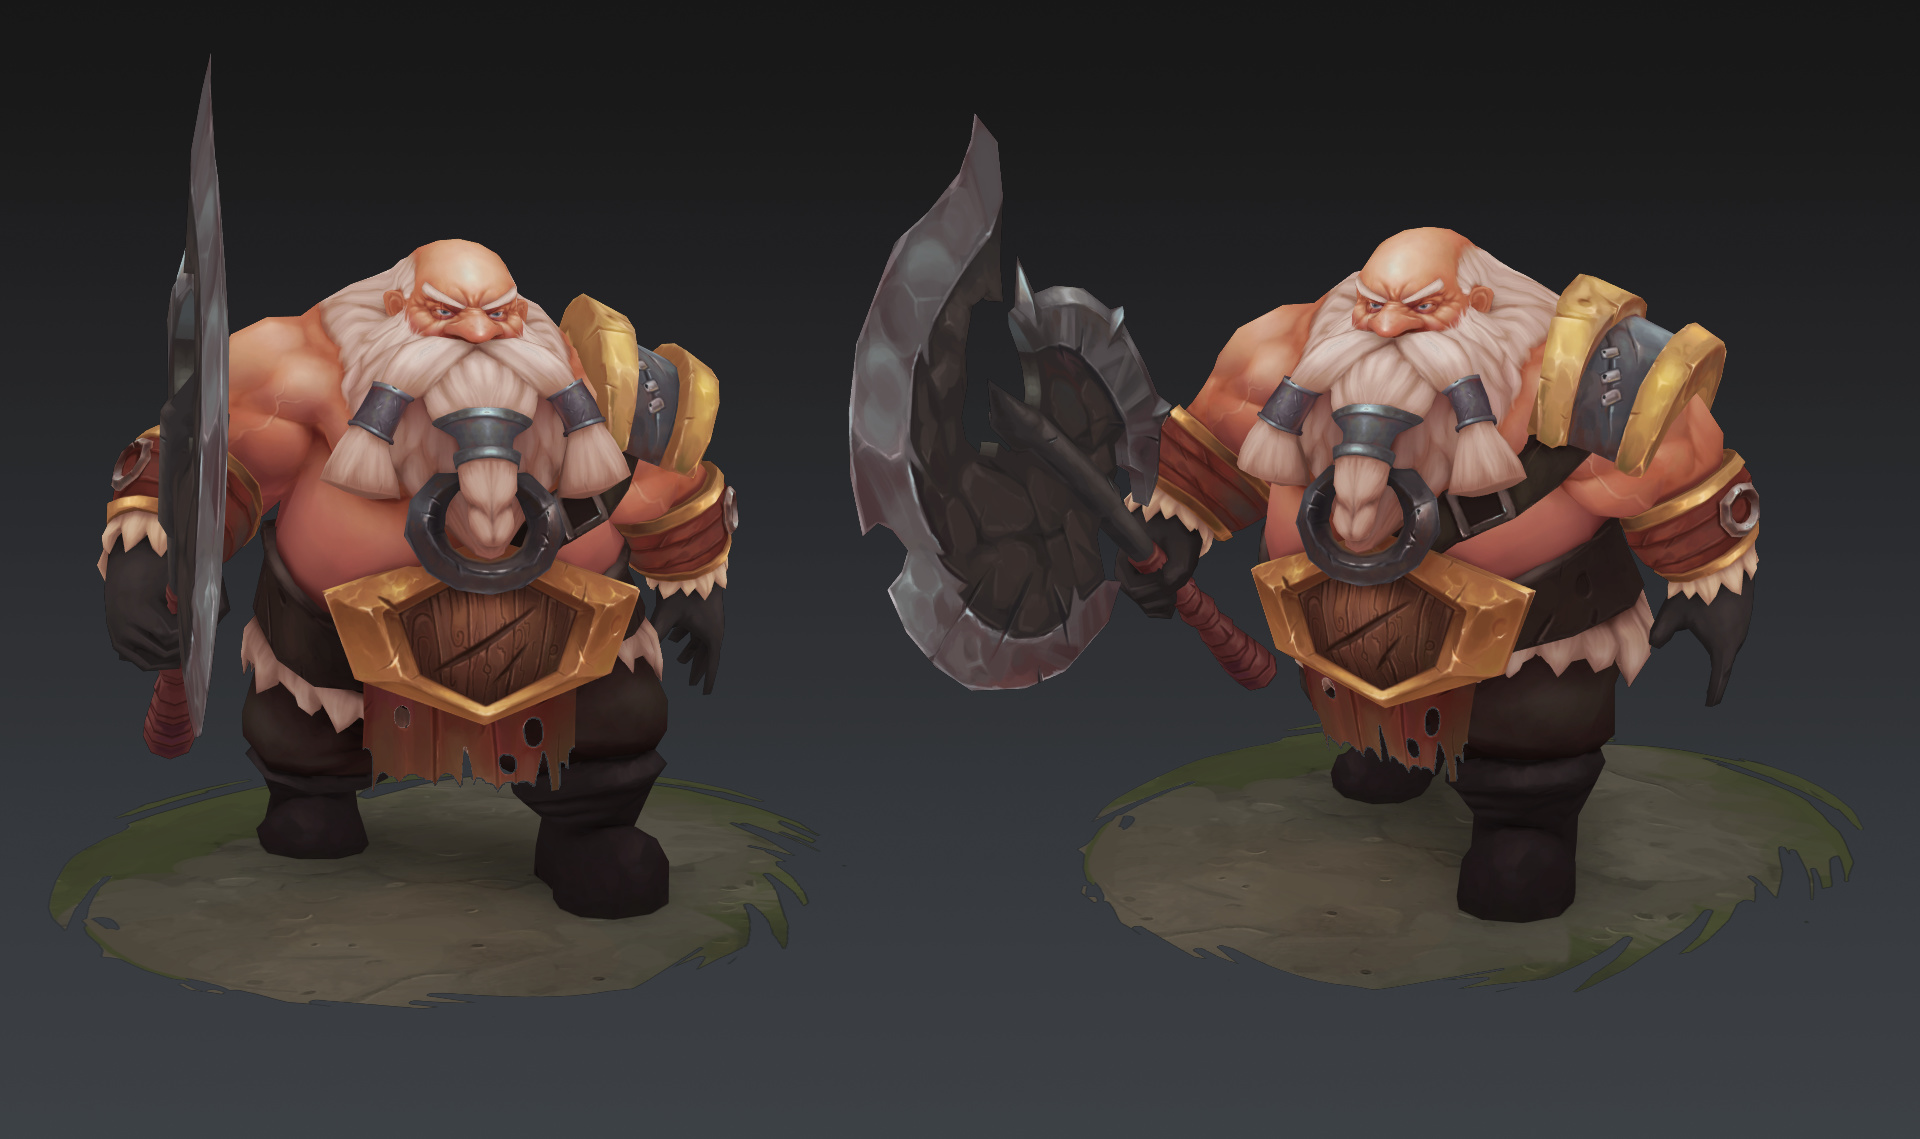 3D Hand-Painted Character Dwarf for games - Forum Gallery - Blender